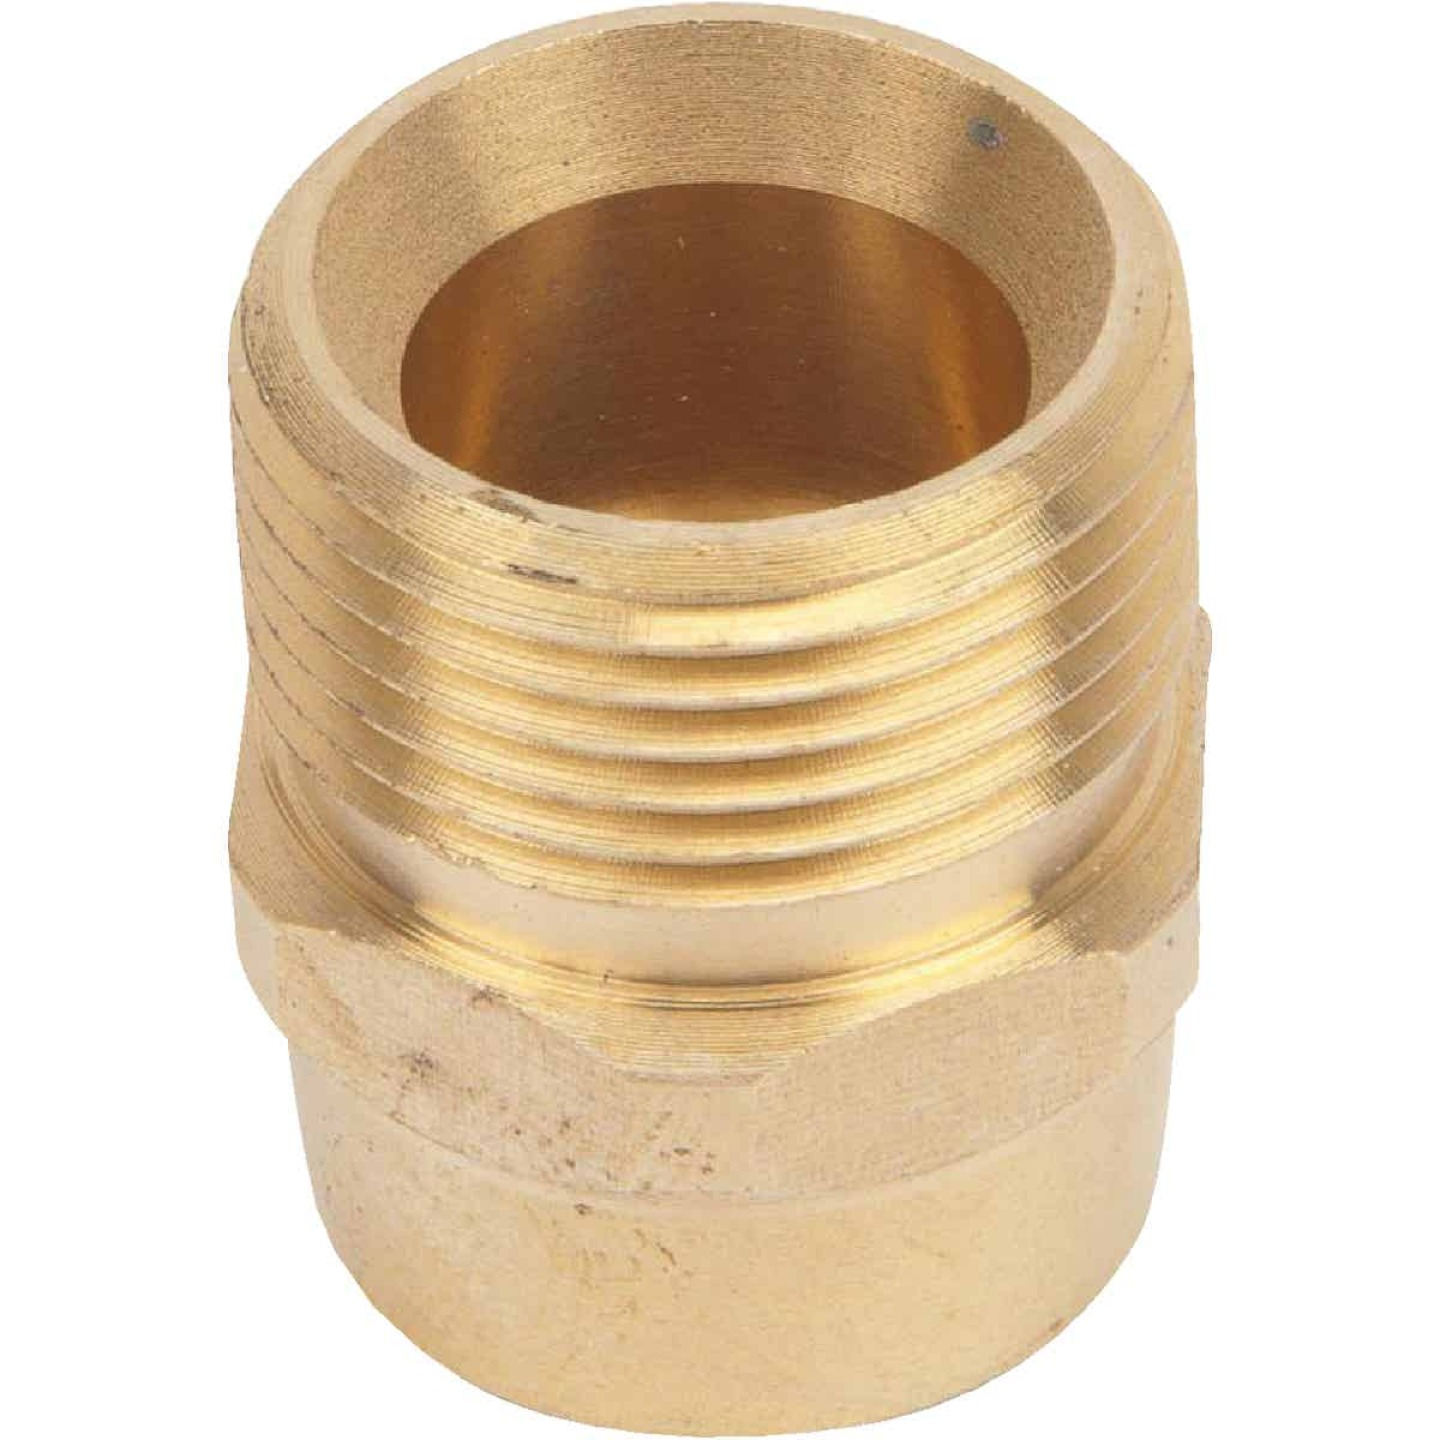 Forney 1/4 In. Female Pressure Washer Screw Nipple Image 3